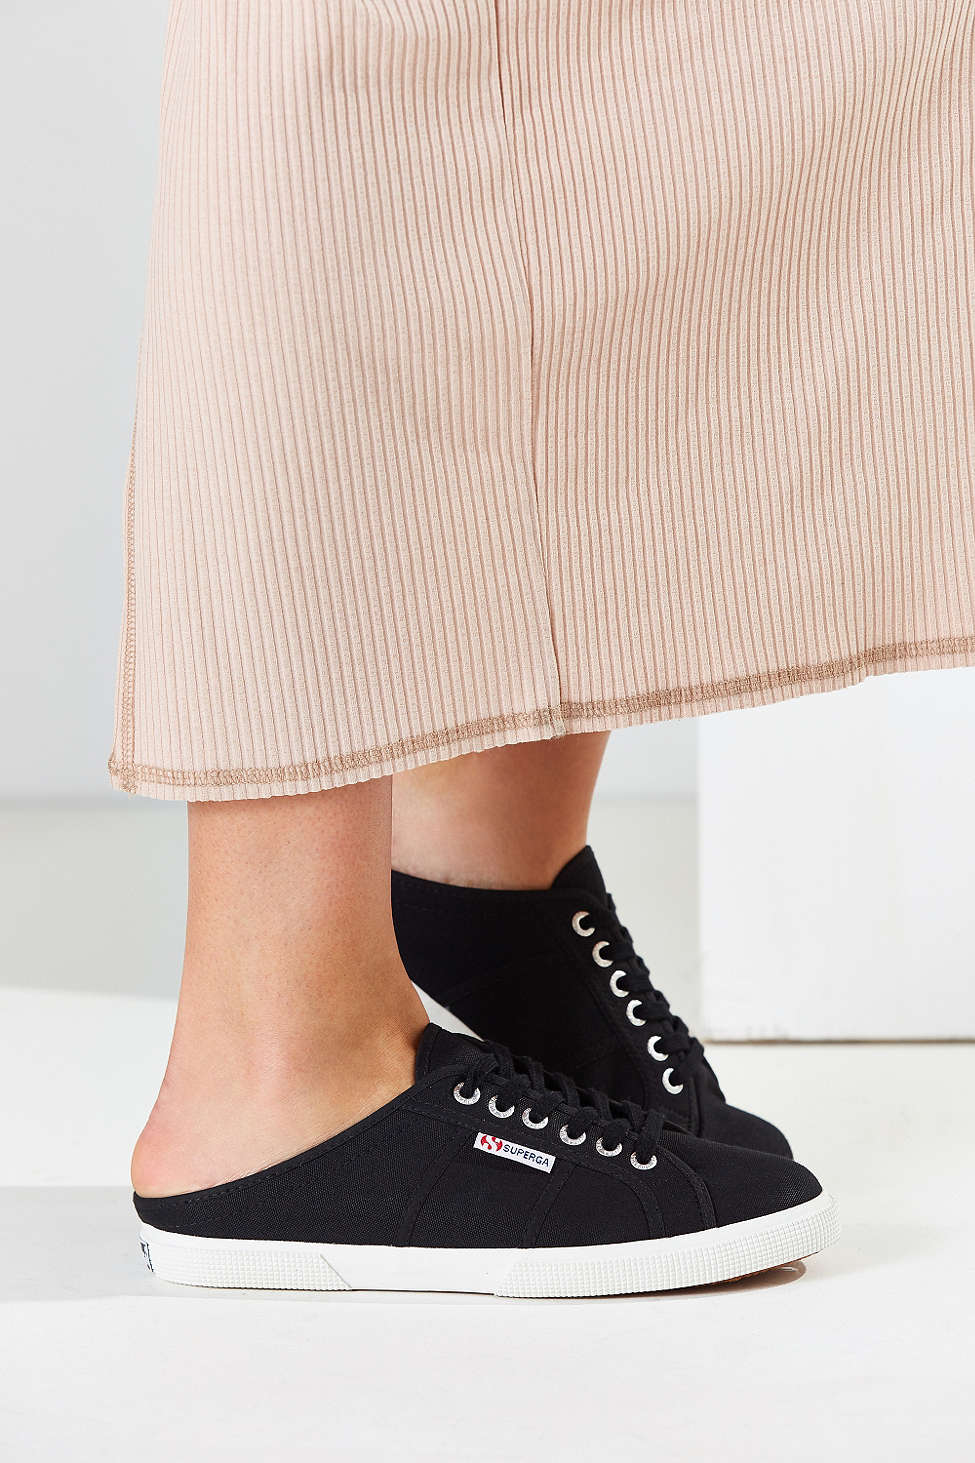 Superga Mule Sneaker. Available in two colors. Urban Outfitters. $65.